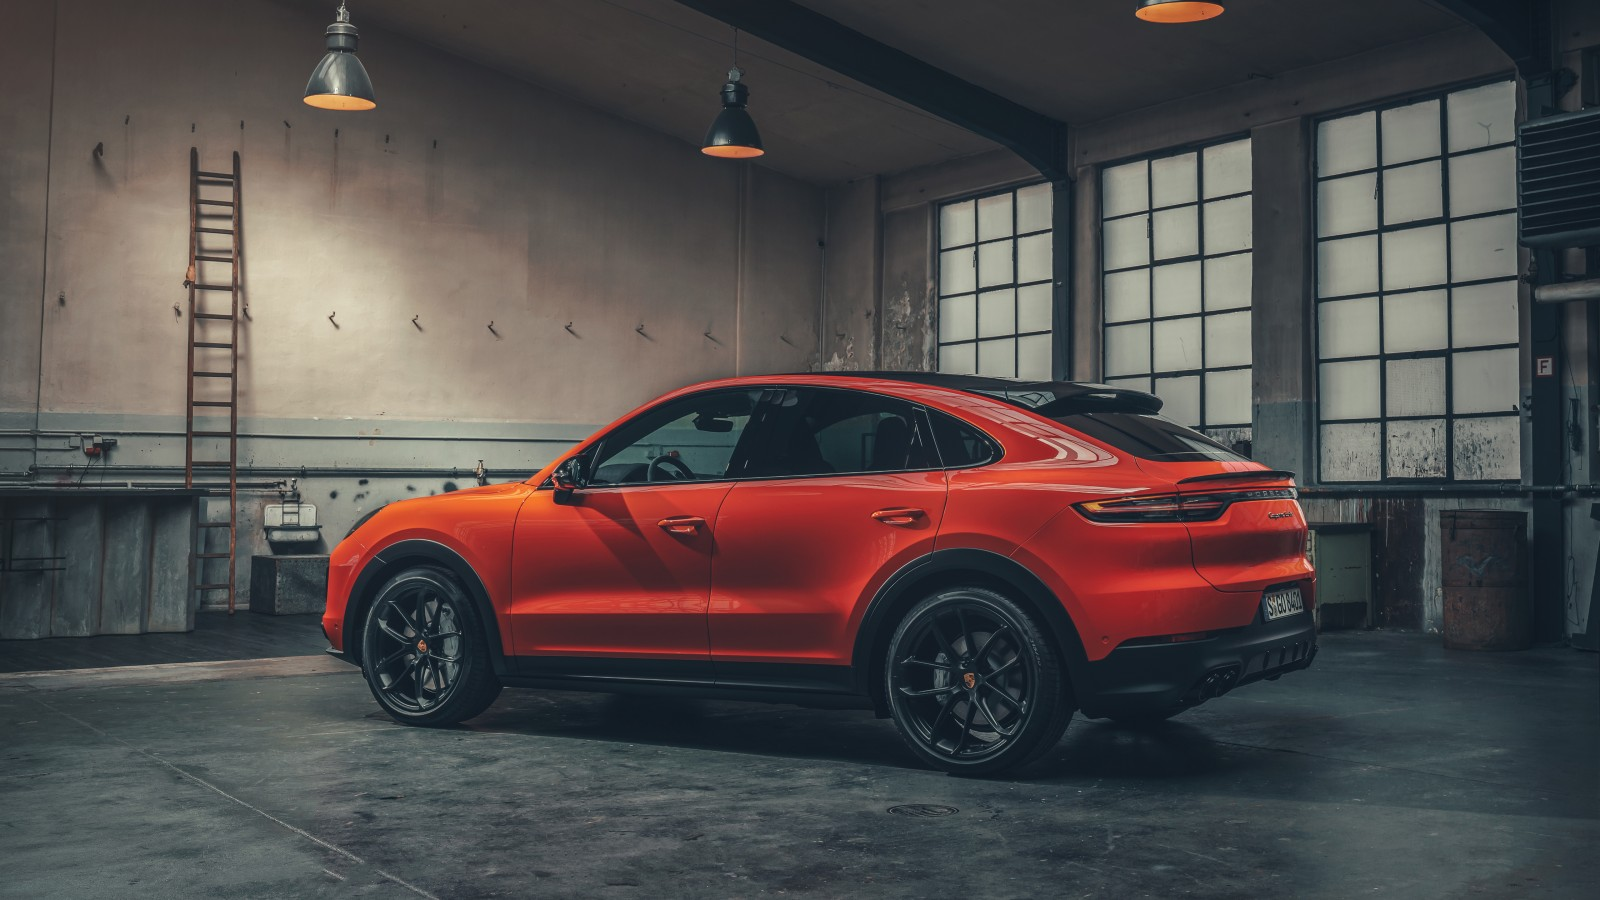 Porsche Cayenne Turbo Coupe 2019 4K 2 Wallpaper | HD Car Wallpapers | ID #12332